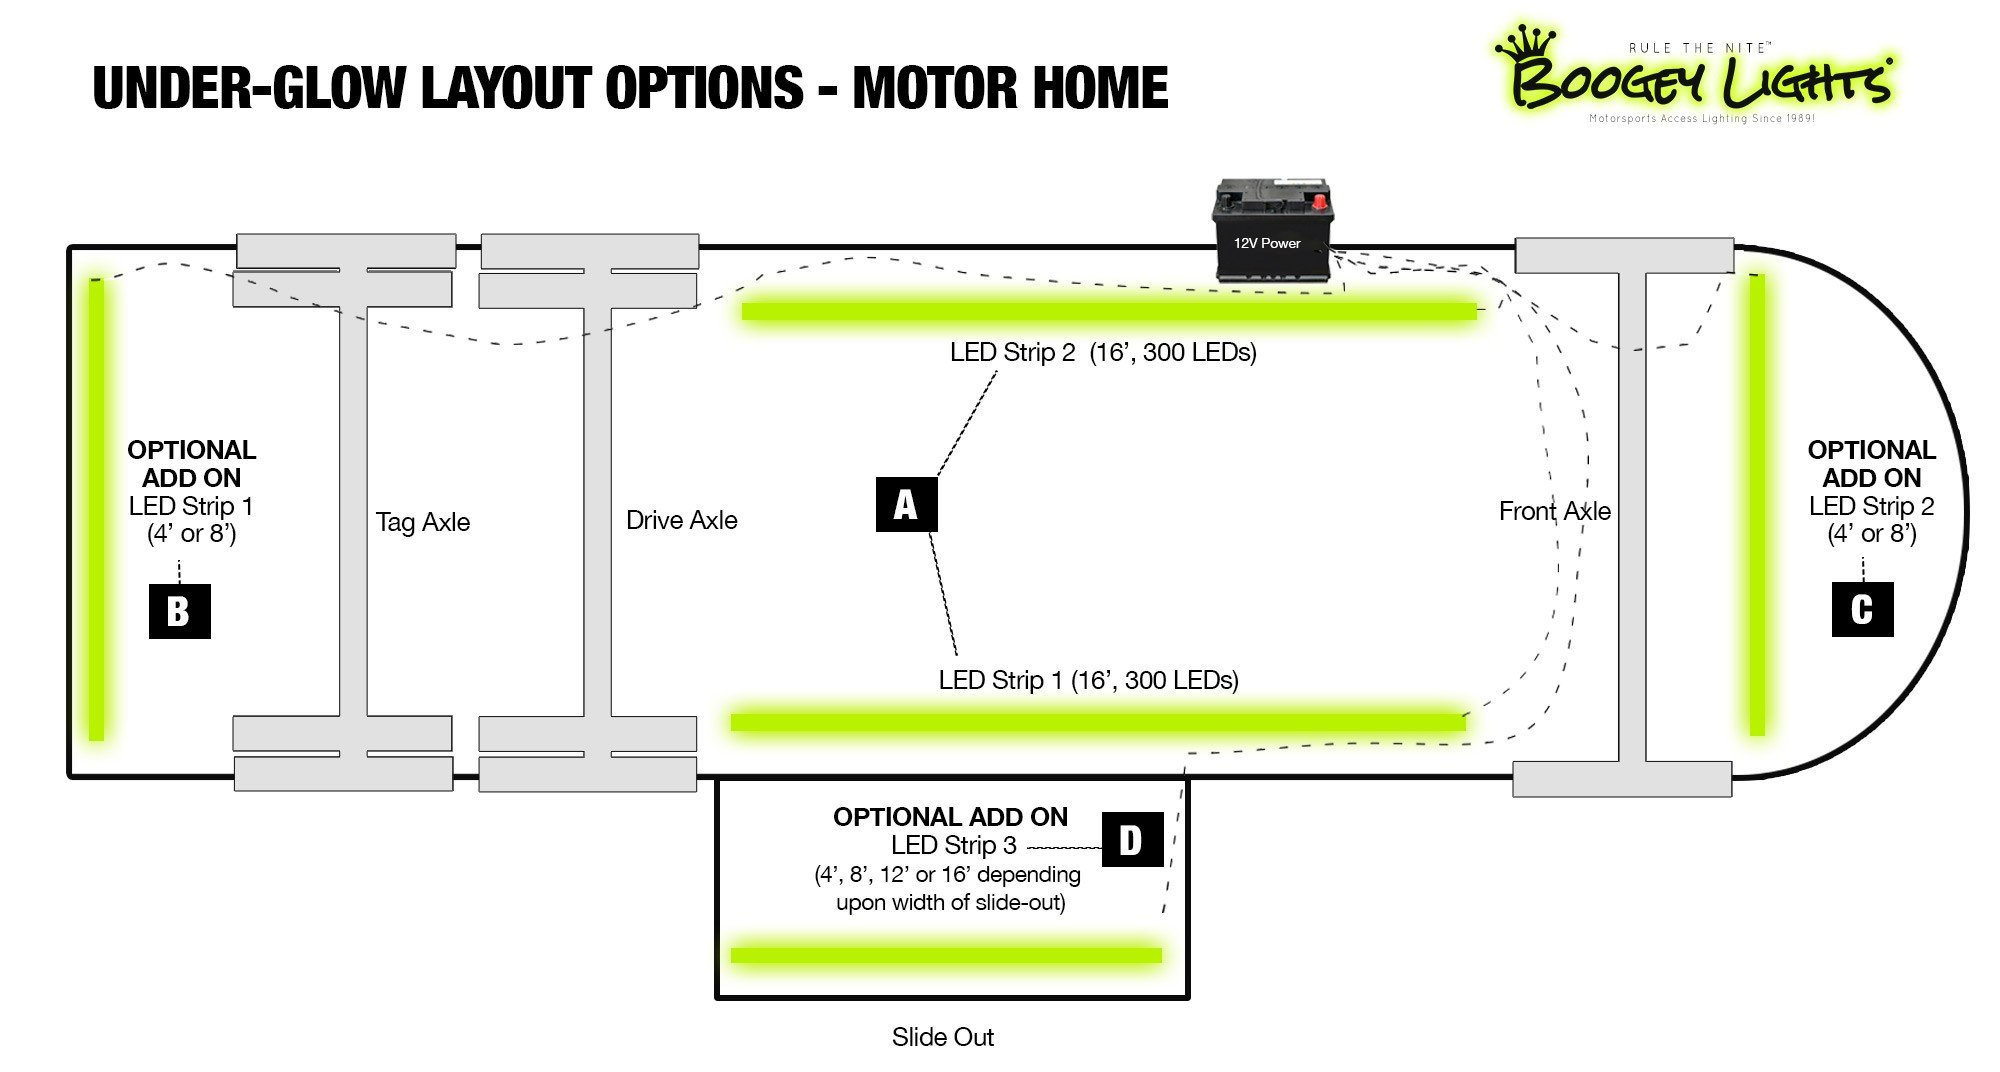 Led Trailer Lights Wiring Diagram Boat | Manual E-Books - Boat Trailer Light Wiring Diagram